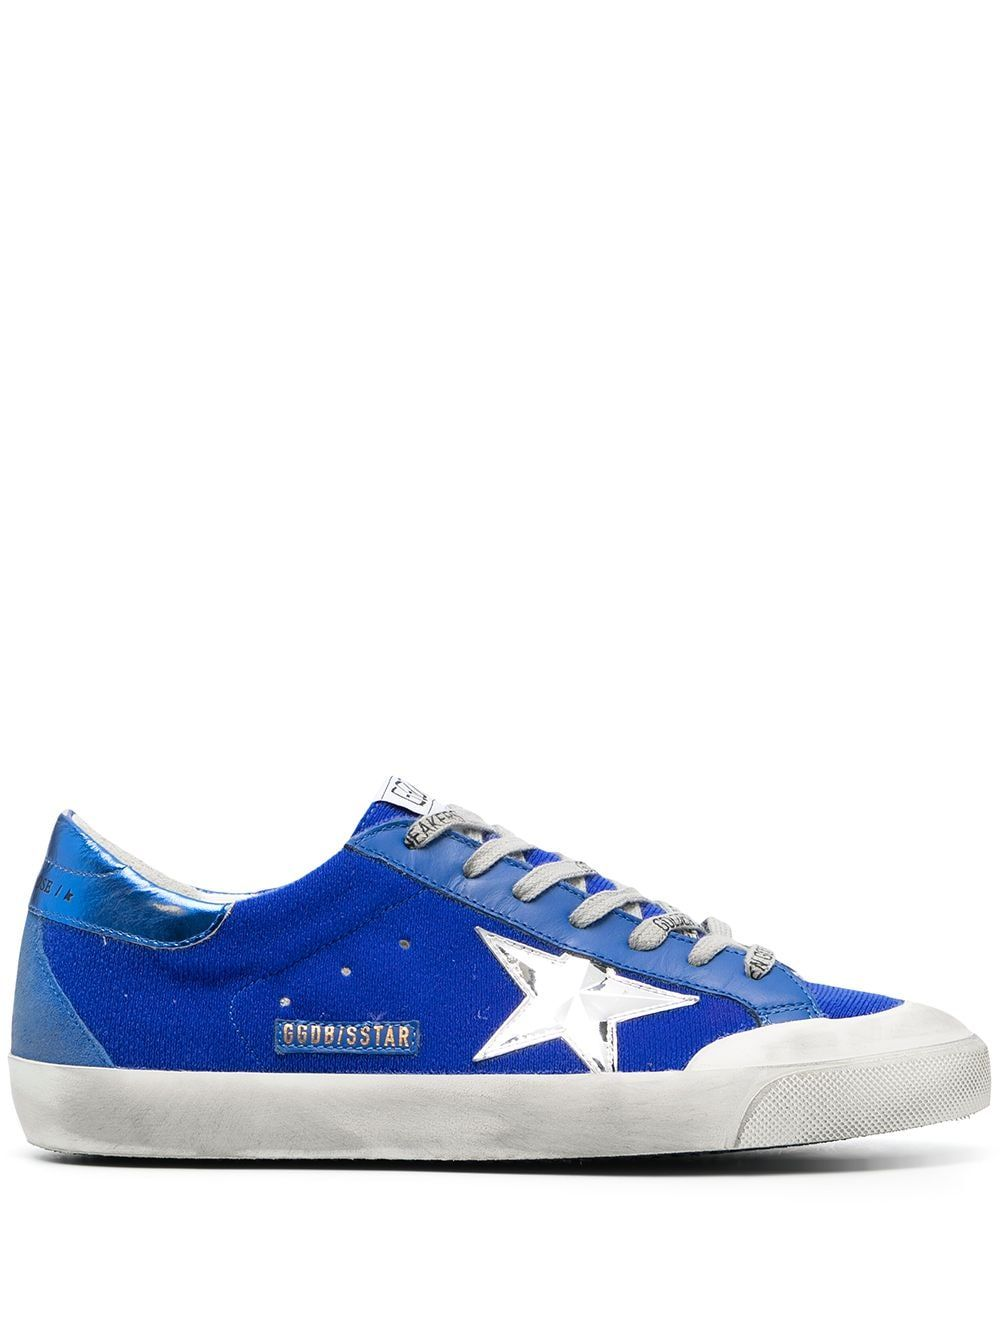 Golden Goose GOLDEN GOOSE MEN'S BLUE LEATHER SNEAKERS